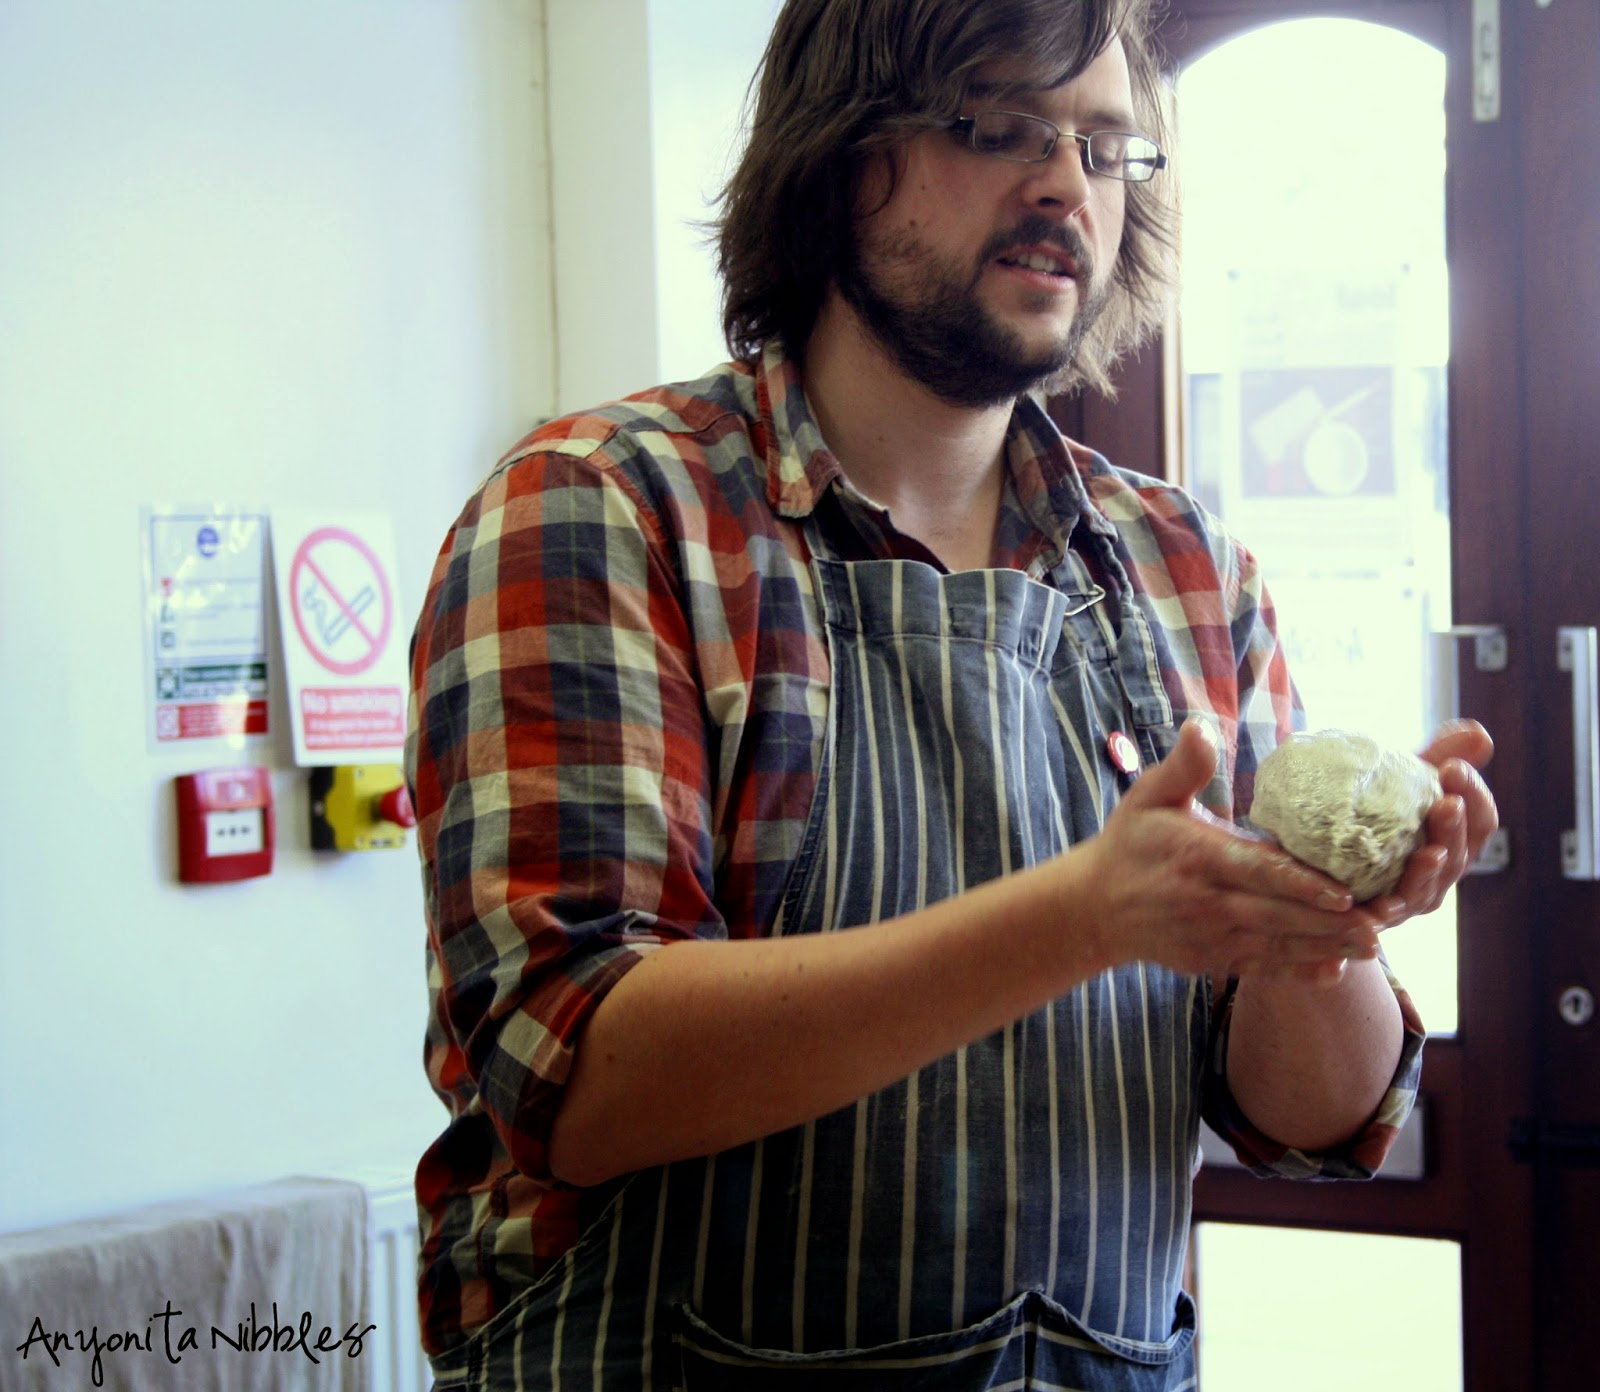 Tom Baker of Loaf in Stirchley, Birmingham